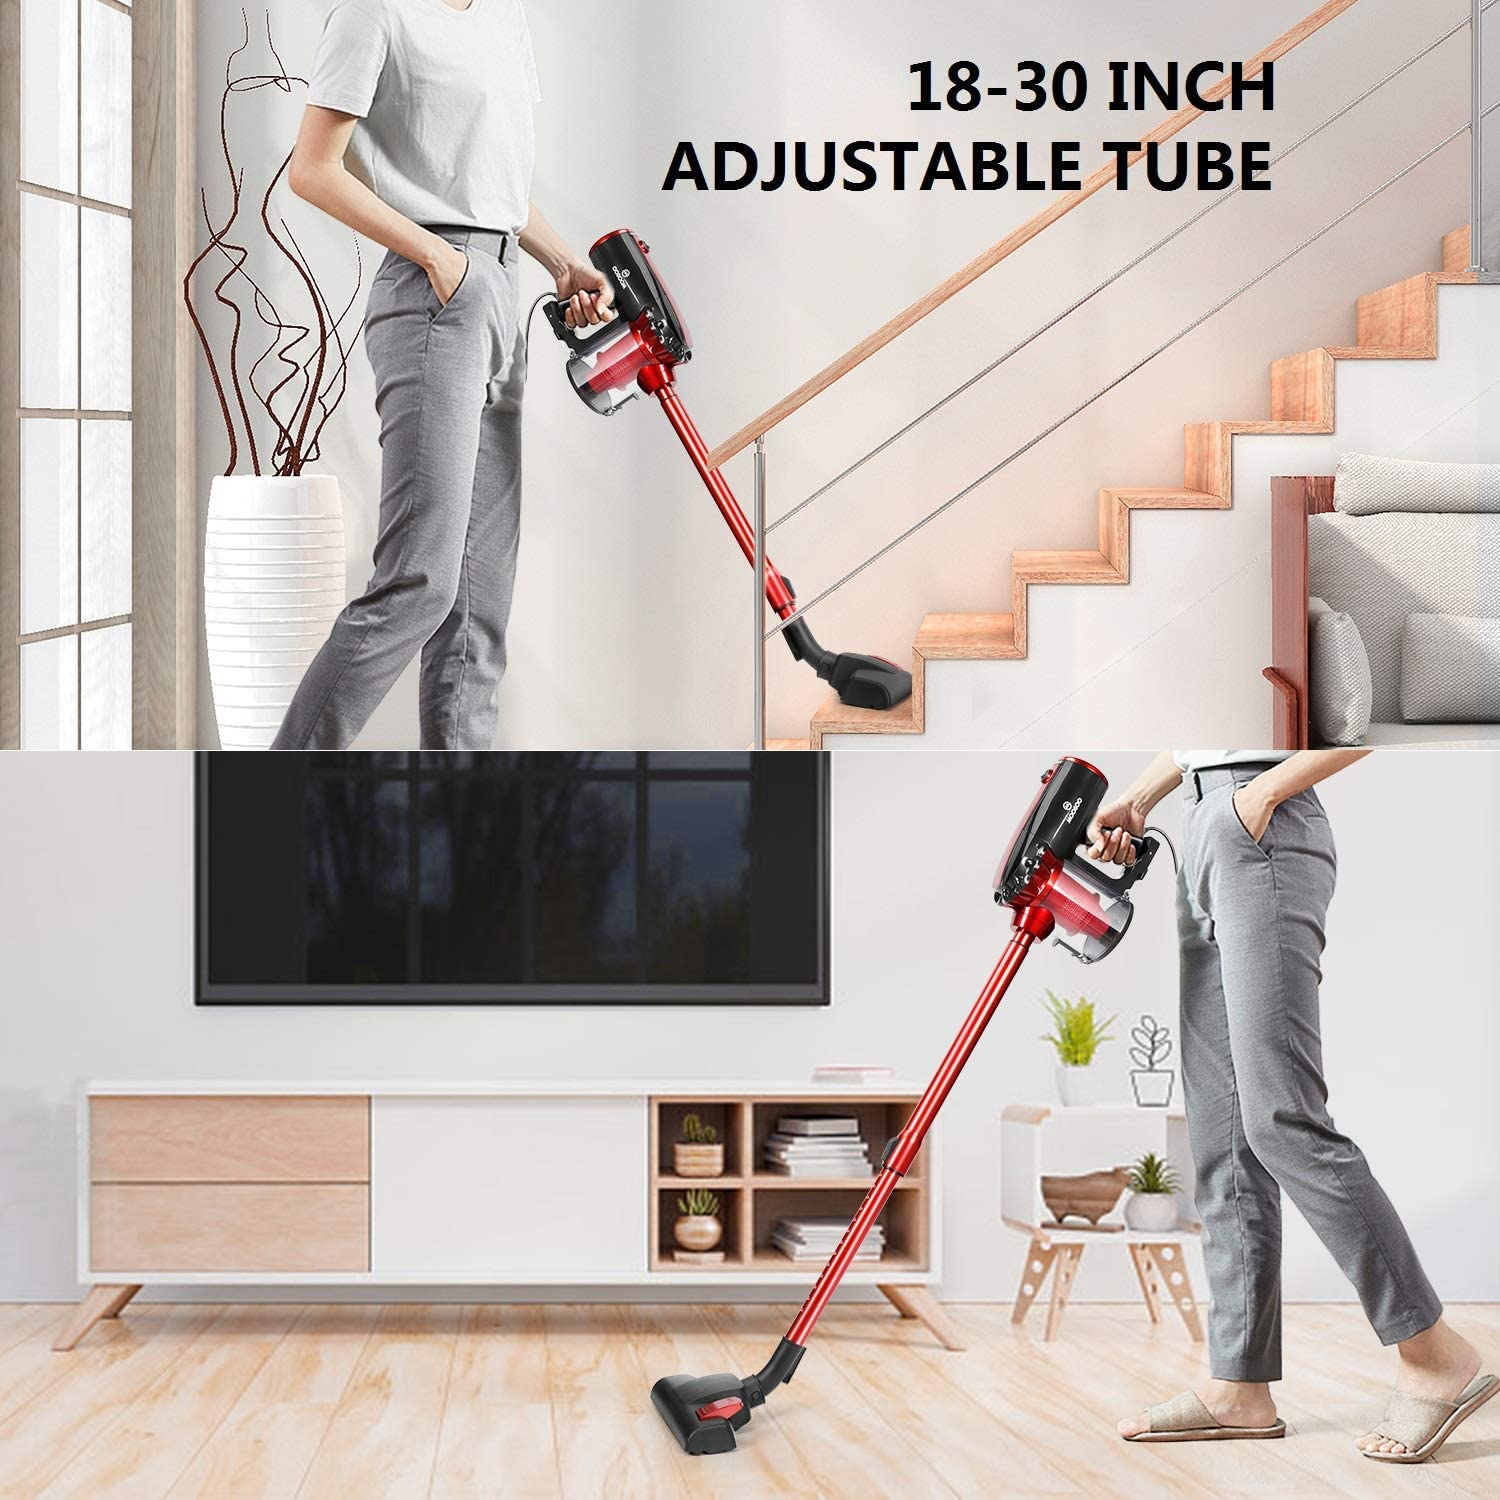 MOOSOO Vacuum Cleaner, 17KPa Strong Suction 4 in 1 Corded Stick Vacuum for Hard Floor with HEPA Filters, D600 -